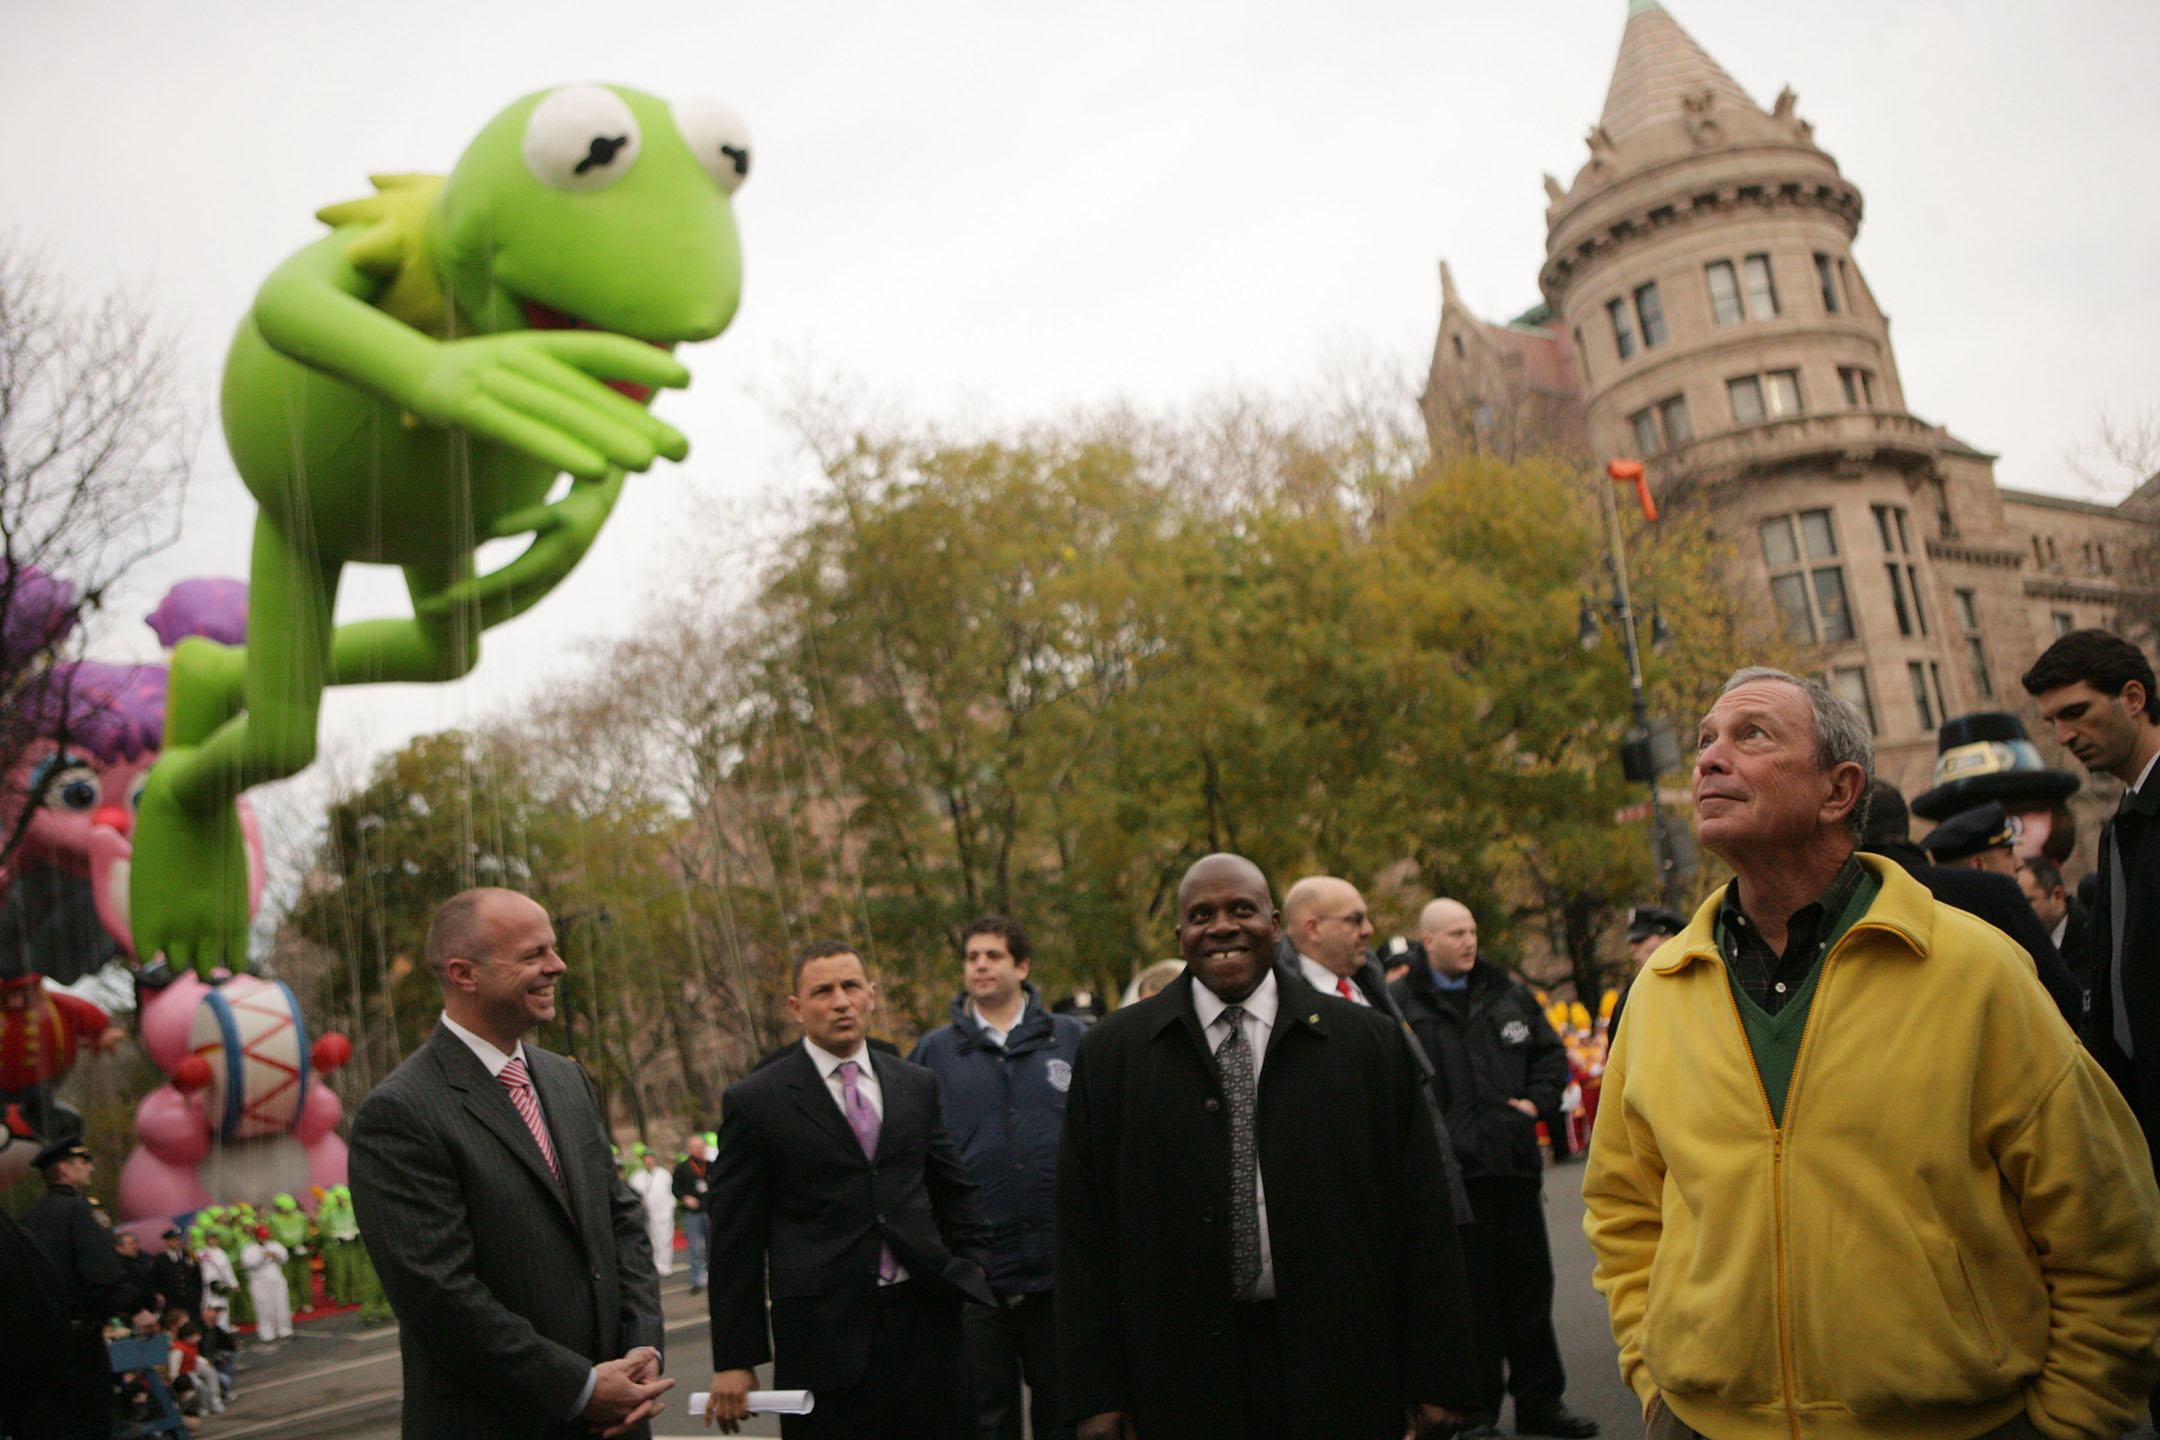 Mayor Michael Bloomberg with Kermit the Frog and security staff, Thanksgiving, November 26, 2009. Mayor Bloomberg Collection, NYC Municipal Archives.